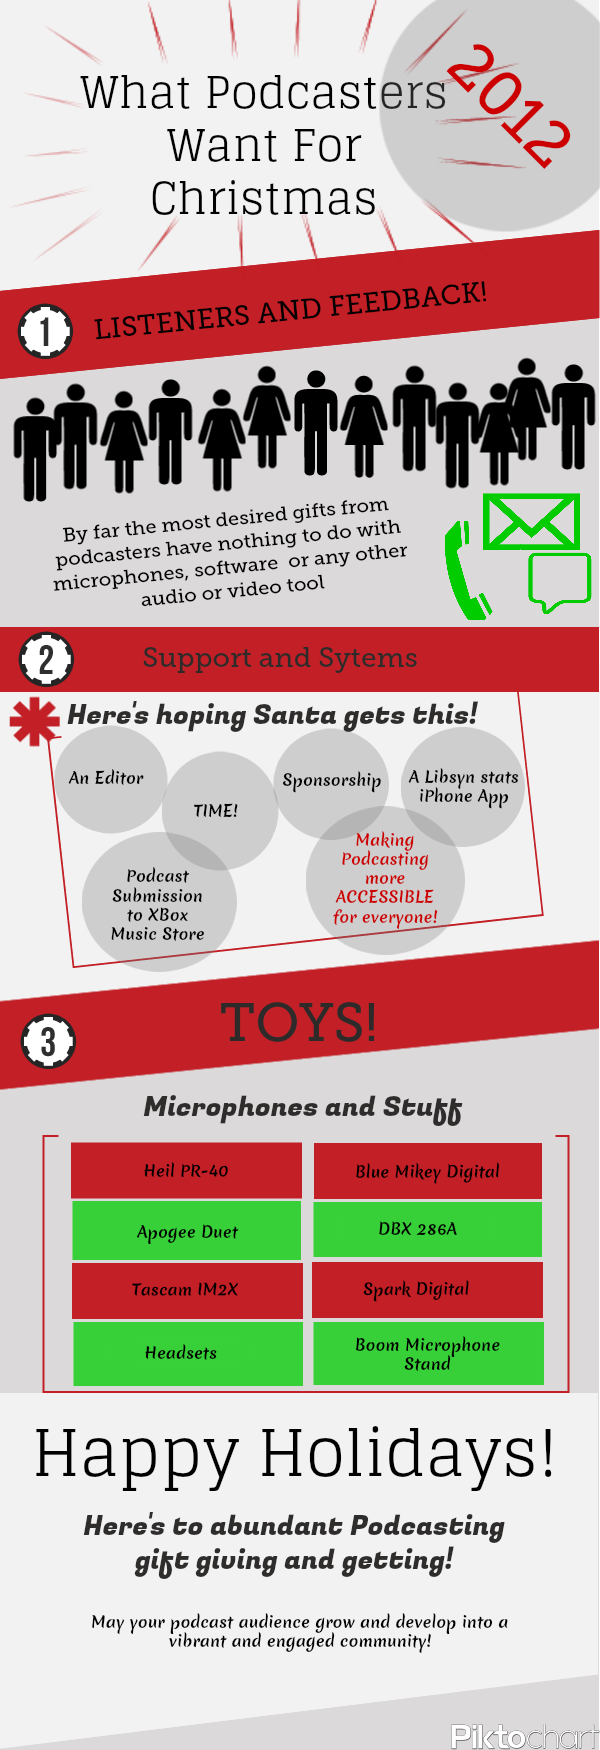 What podcasters want most for christmas 2012